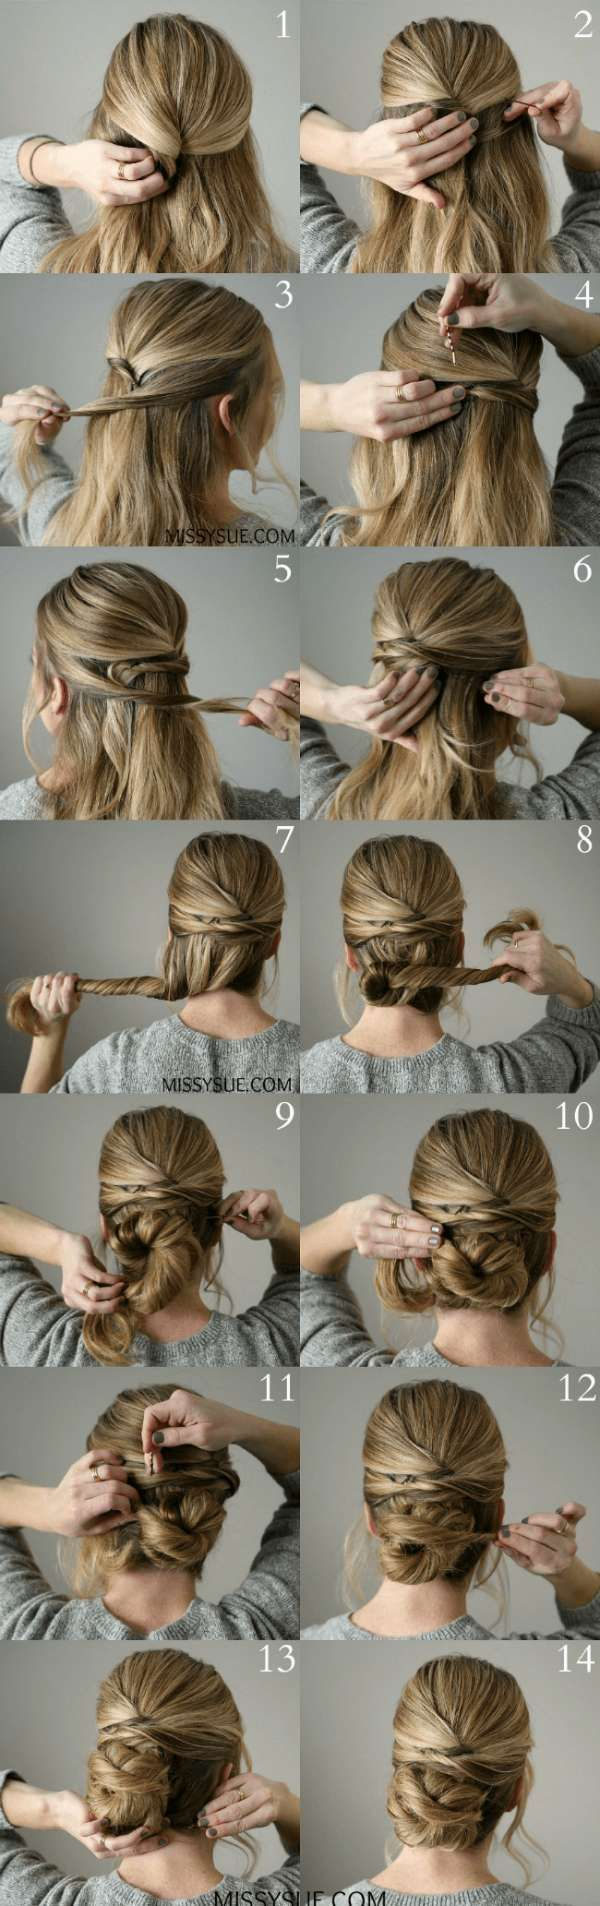 14 instructions for simple hairstyles